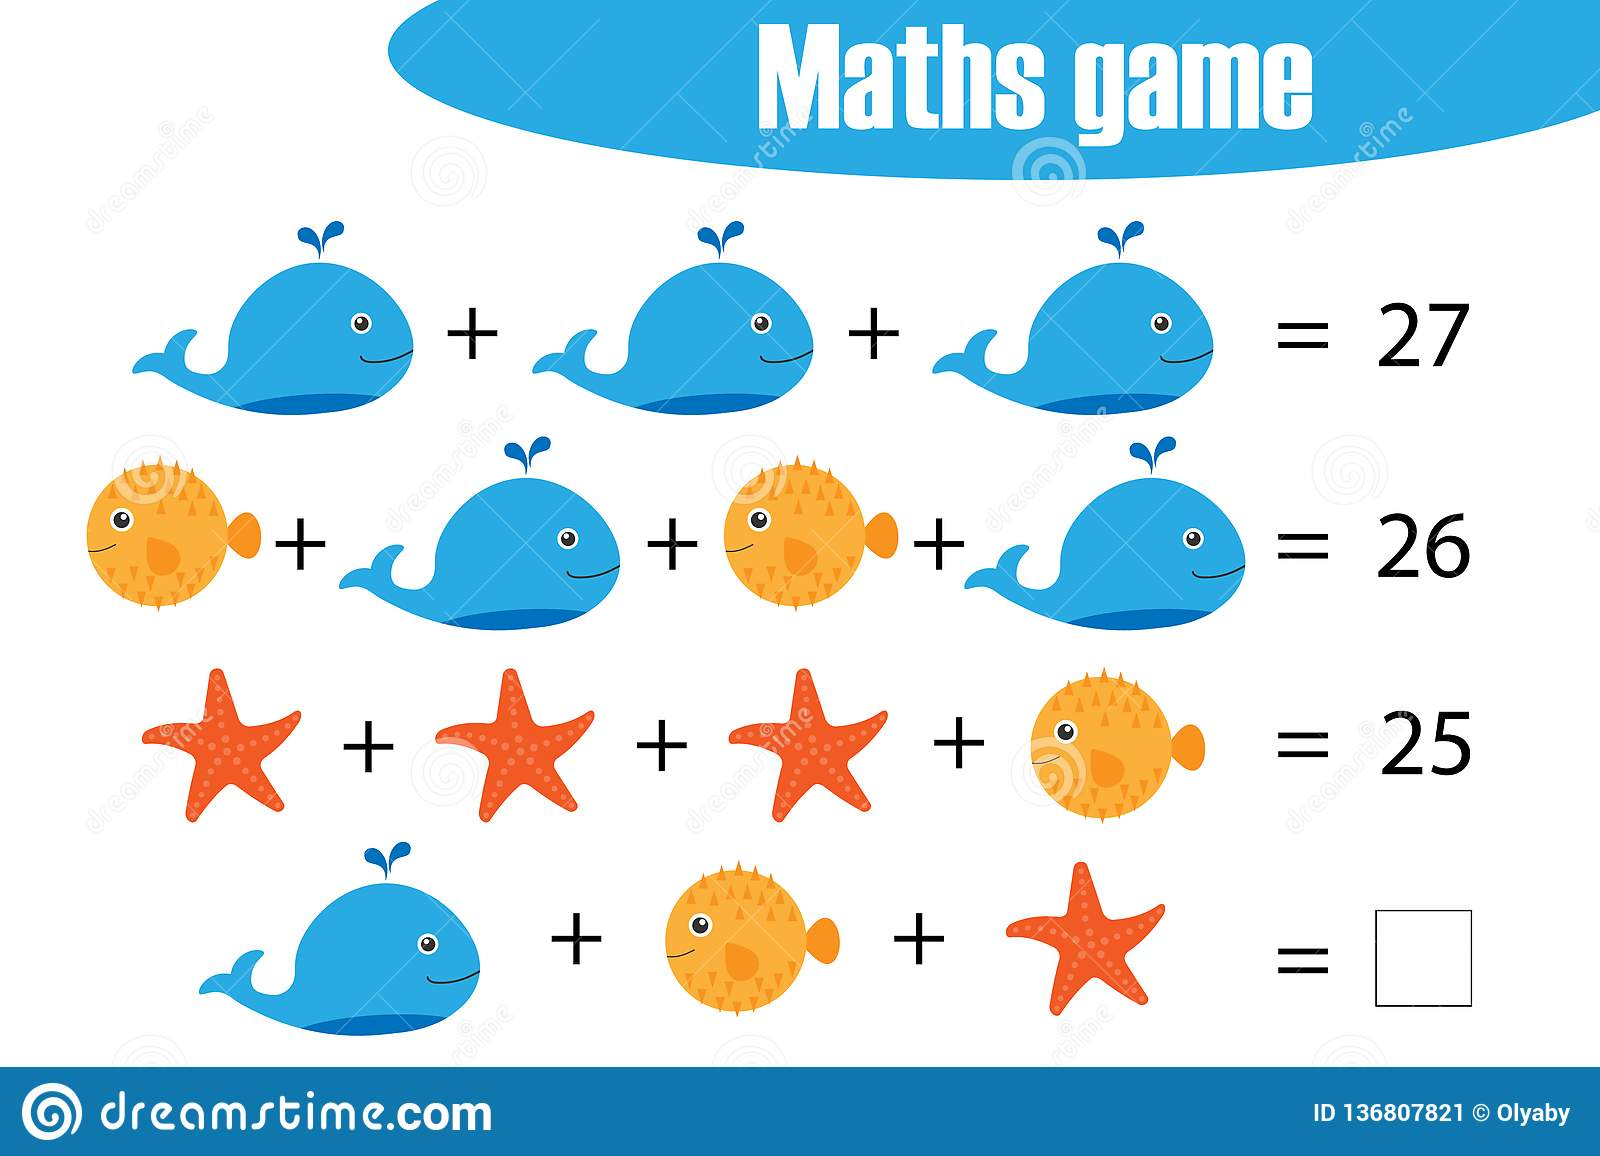 Maths Game With Pictures Of Ocean Animals For Children